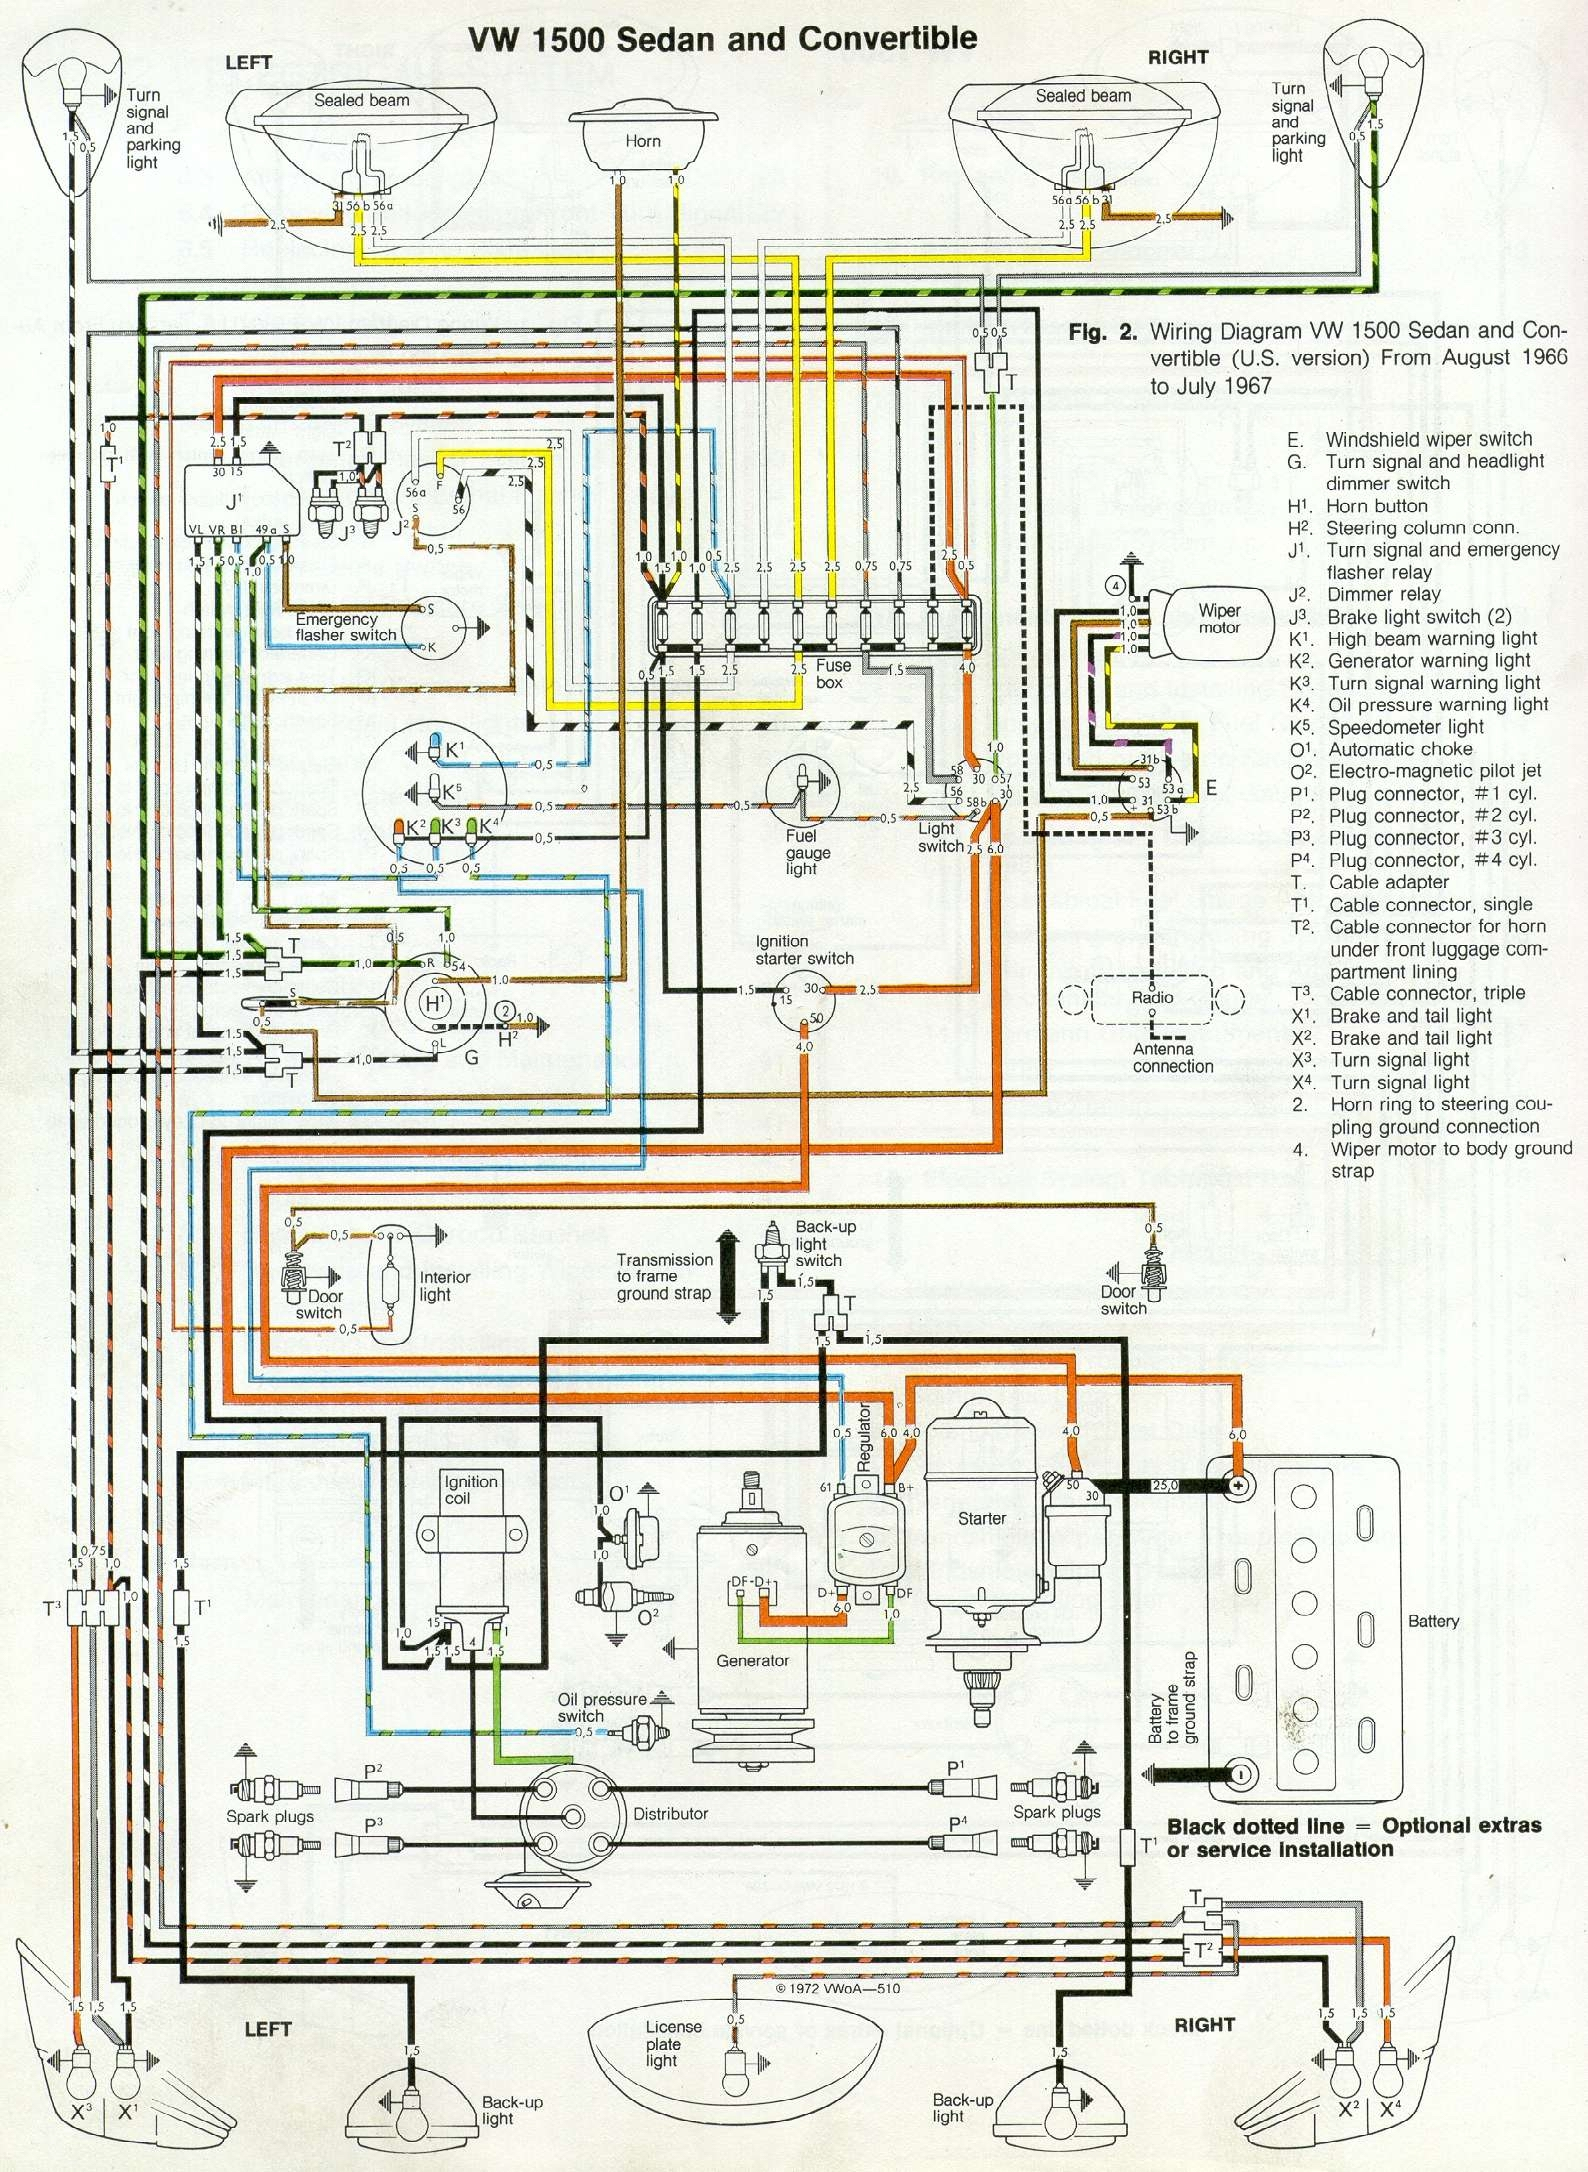 75 vw bus wiring diagrams layout wiring diagrams u2022 rh laurafinlay co uk